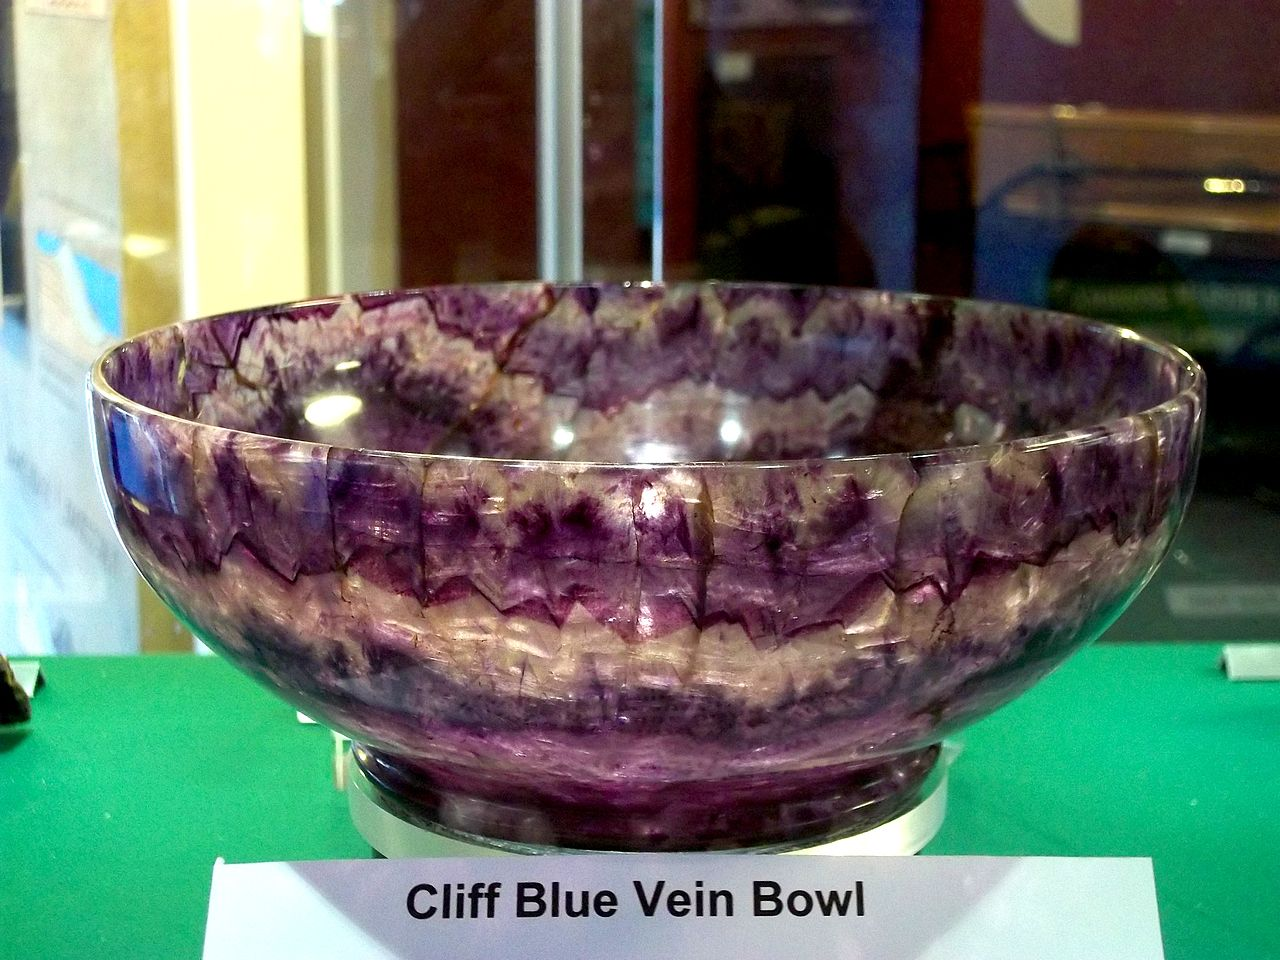 1280px-Cliff_Blue_Vein_Bowl_-_Castleton_Visitor_Centre